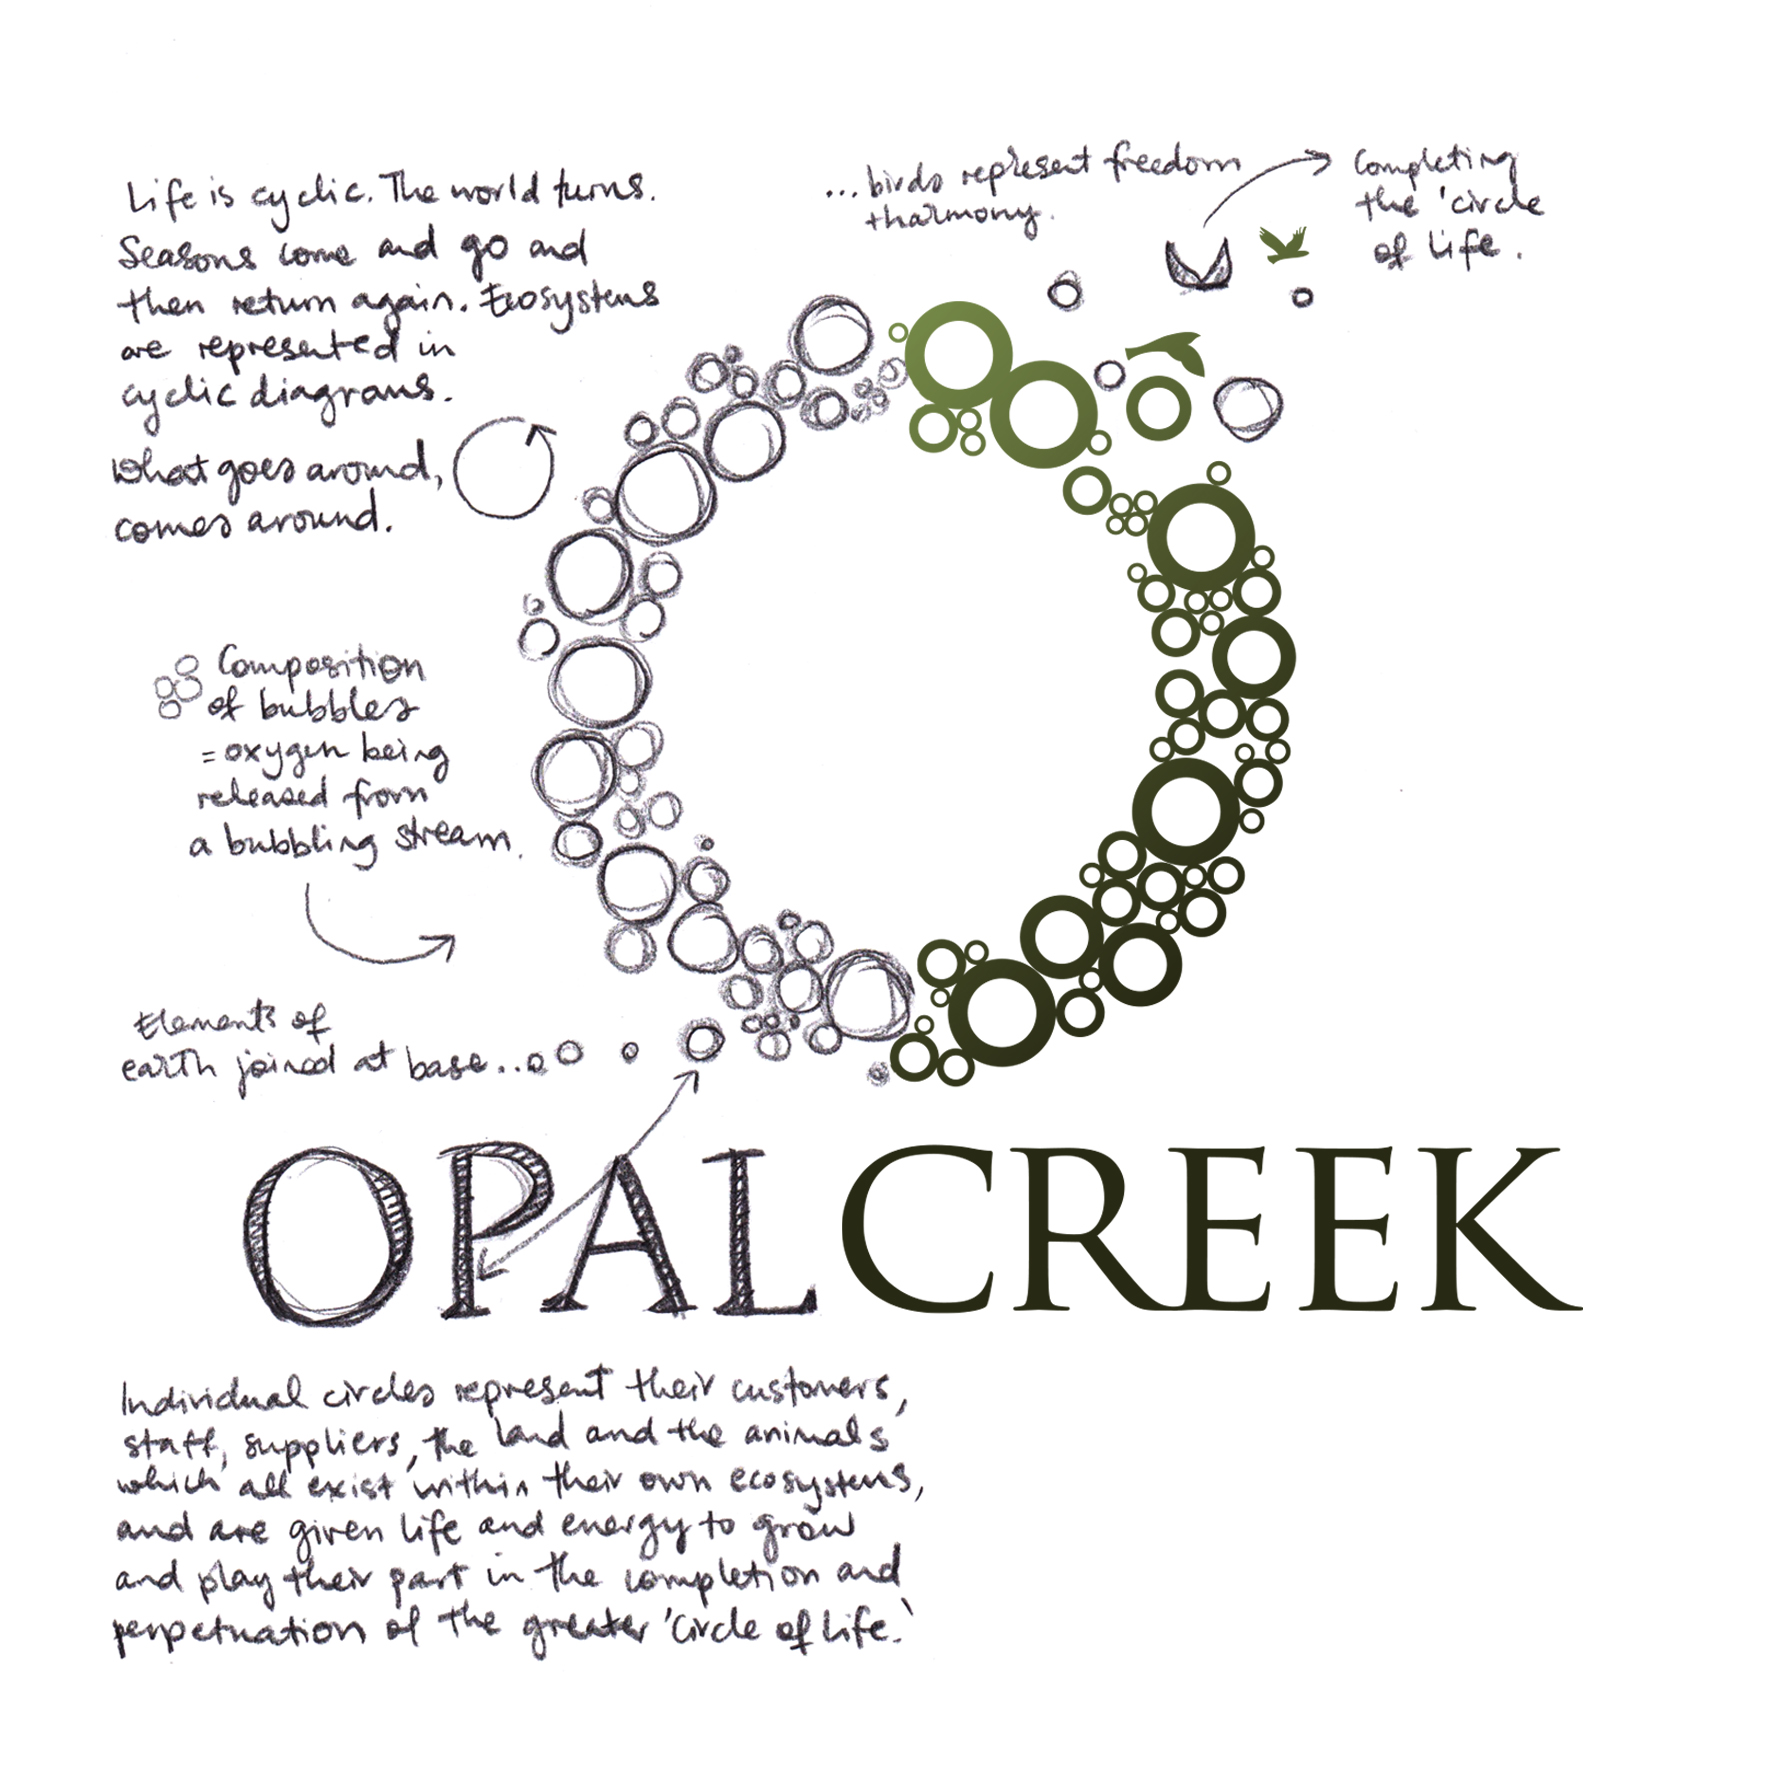 Opal-creek-corporate-identity-logo-graph